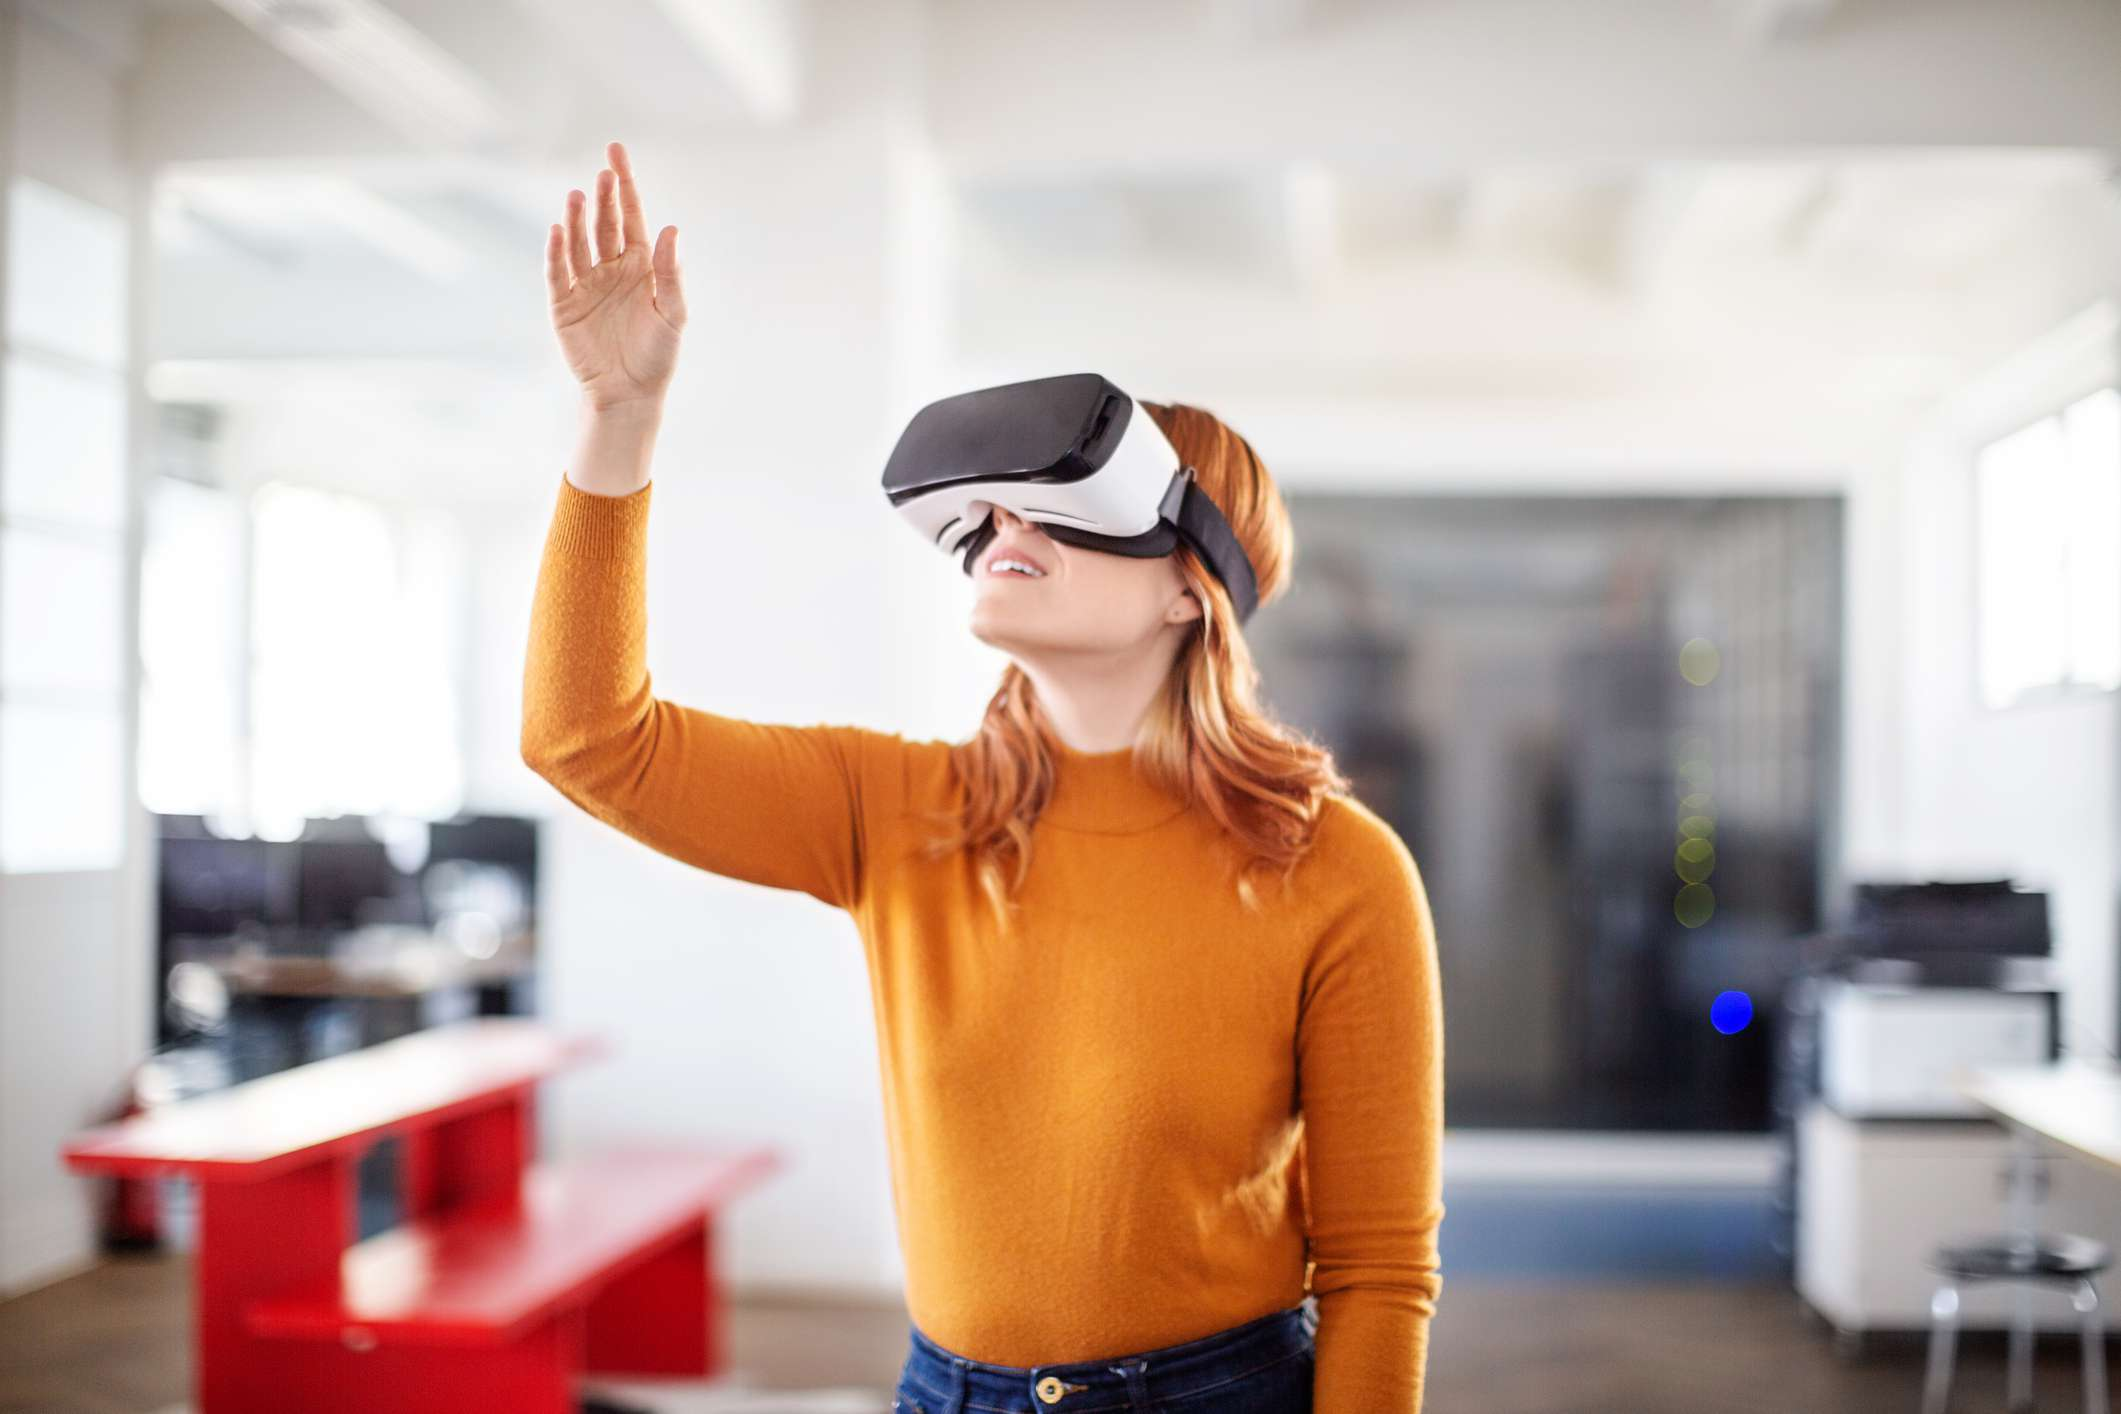 woman wearing VR goggles and reaching up towards something